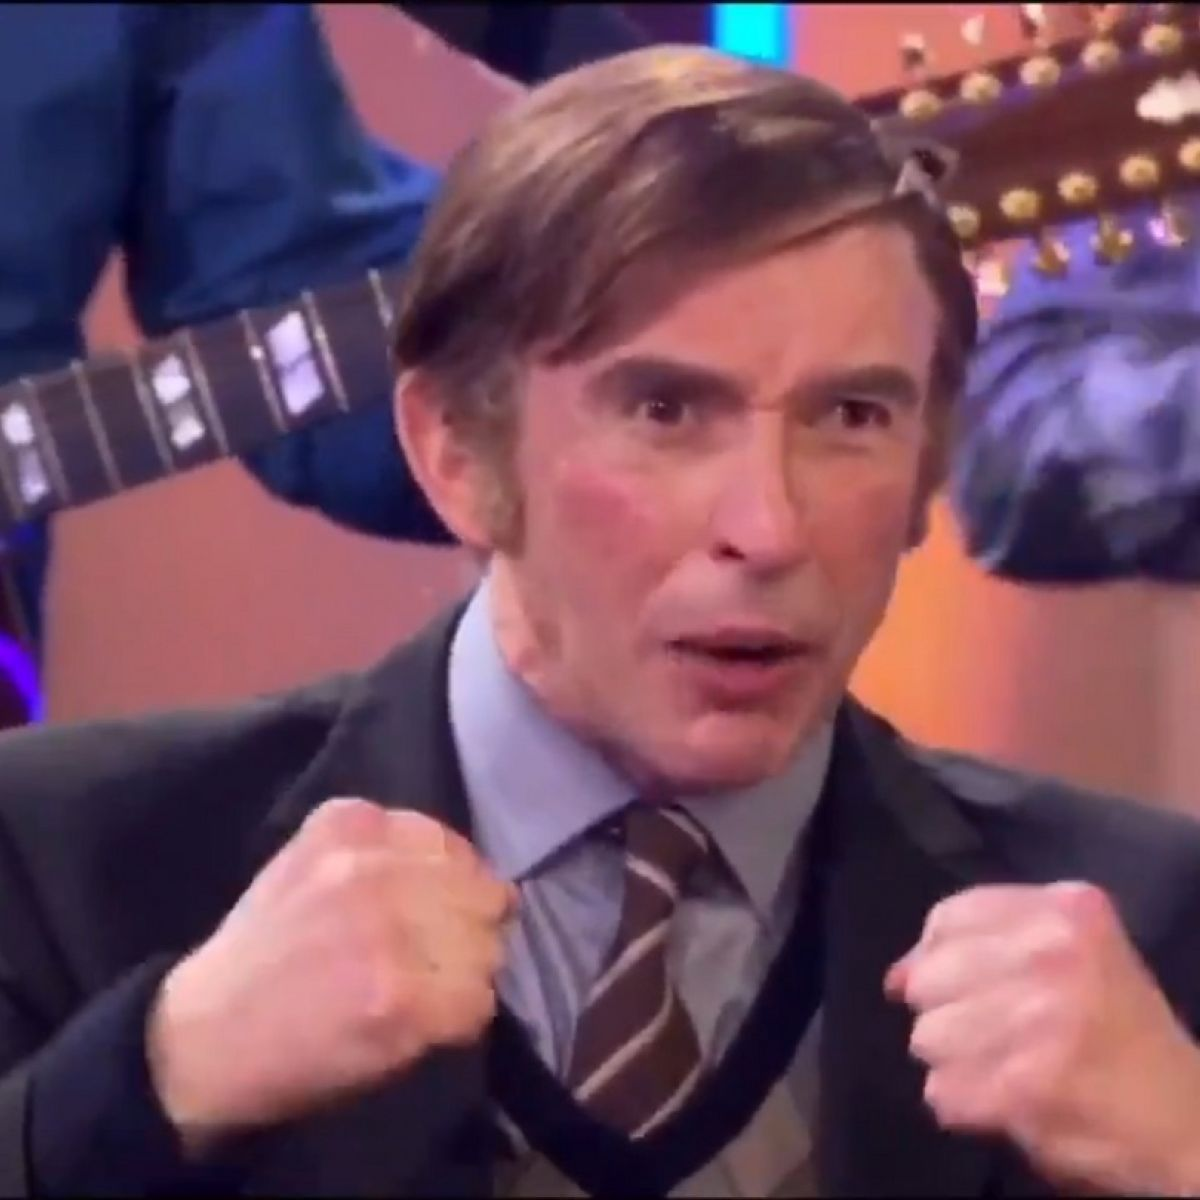 Alan Partridge Singing Come Out Ye Black And Tans Both Awkward Hilarious